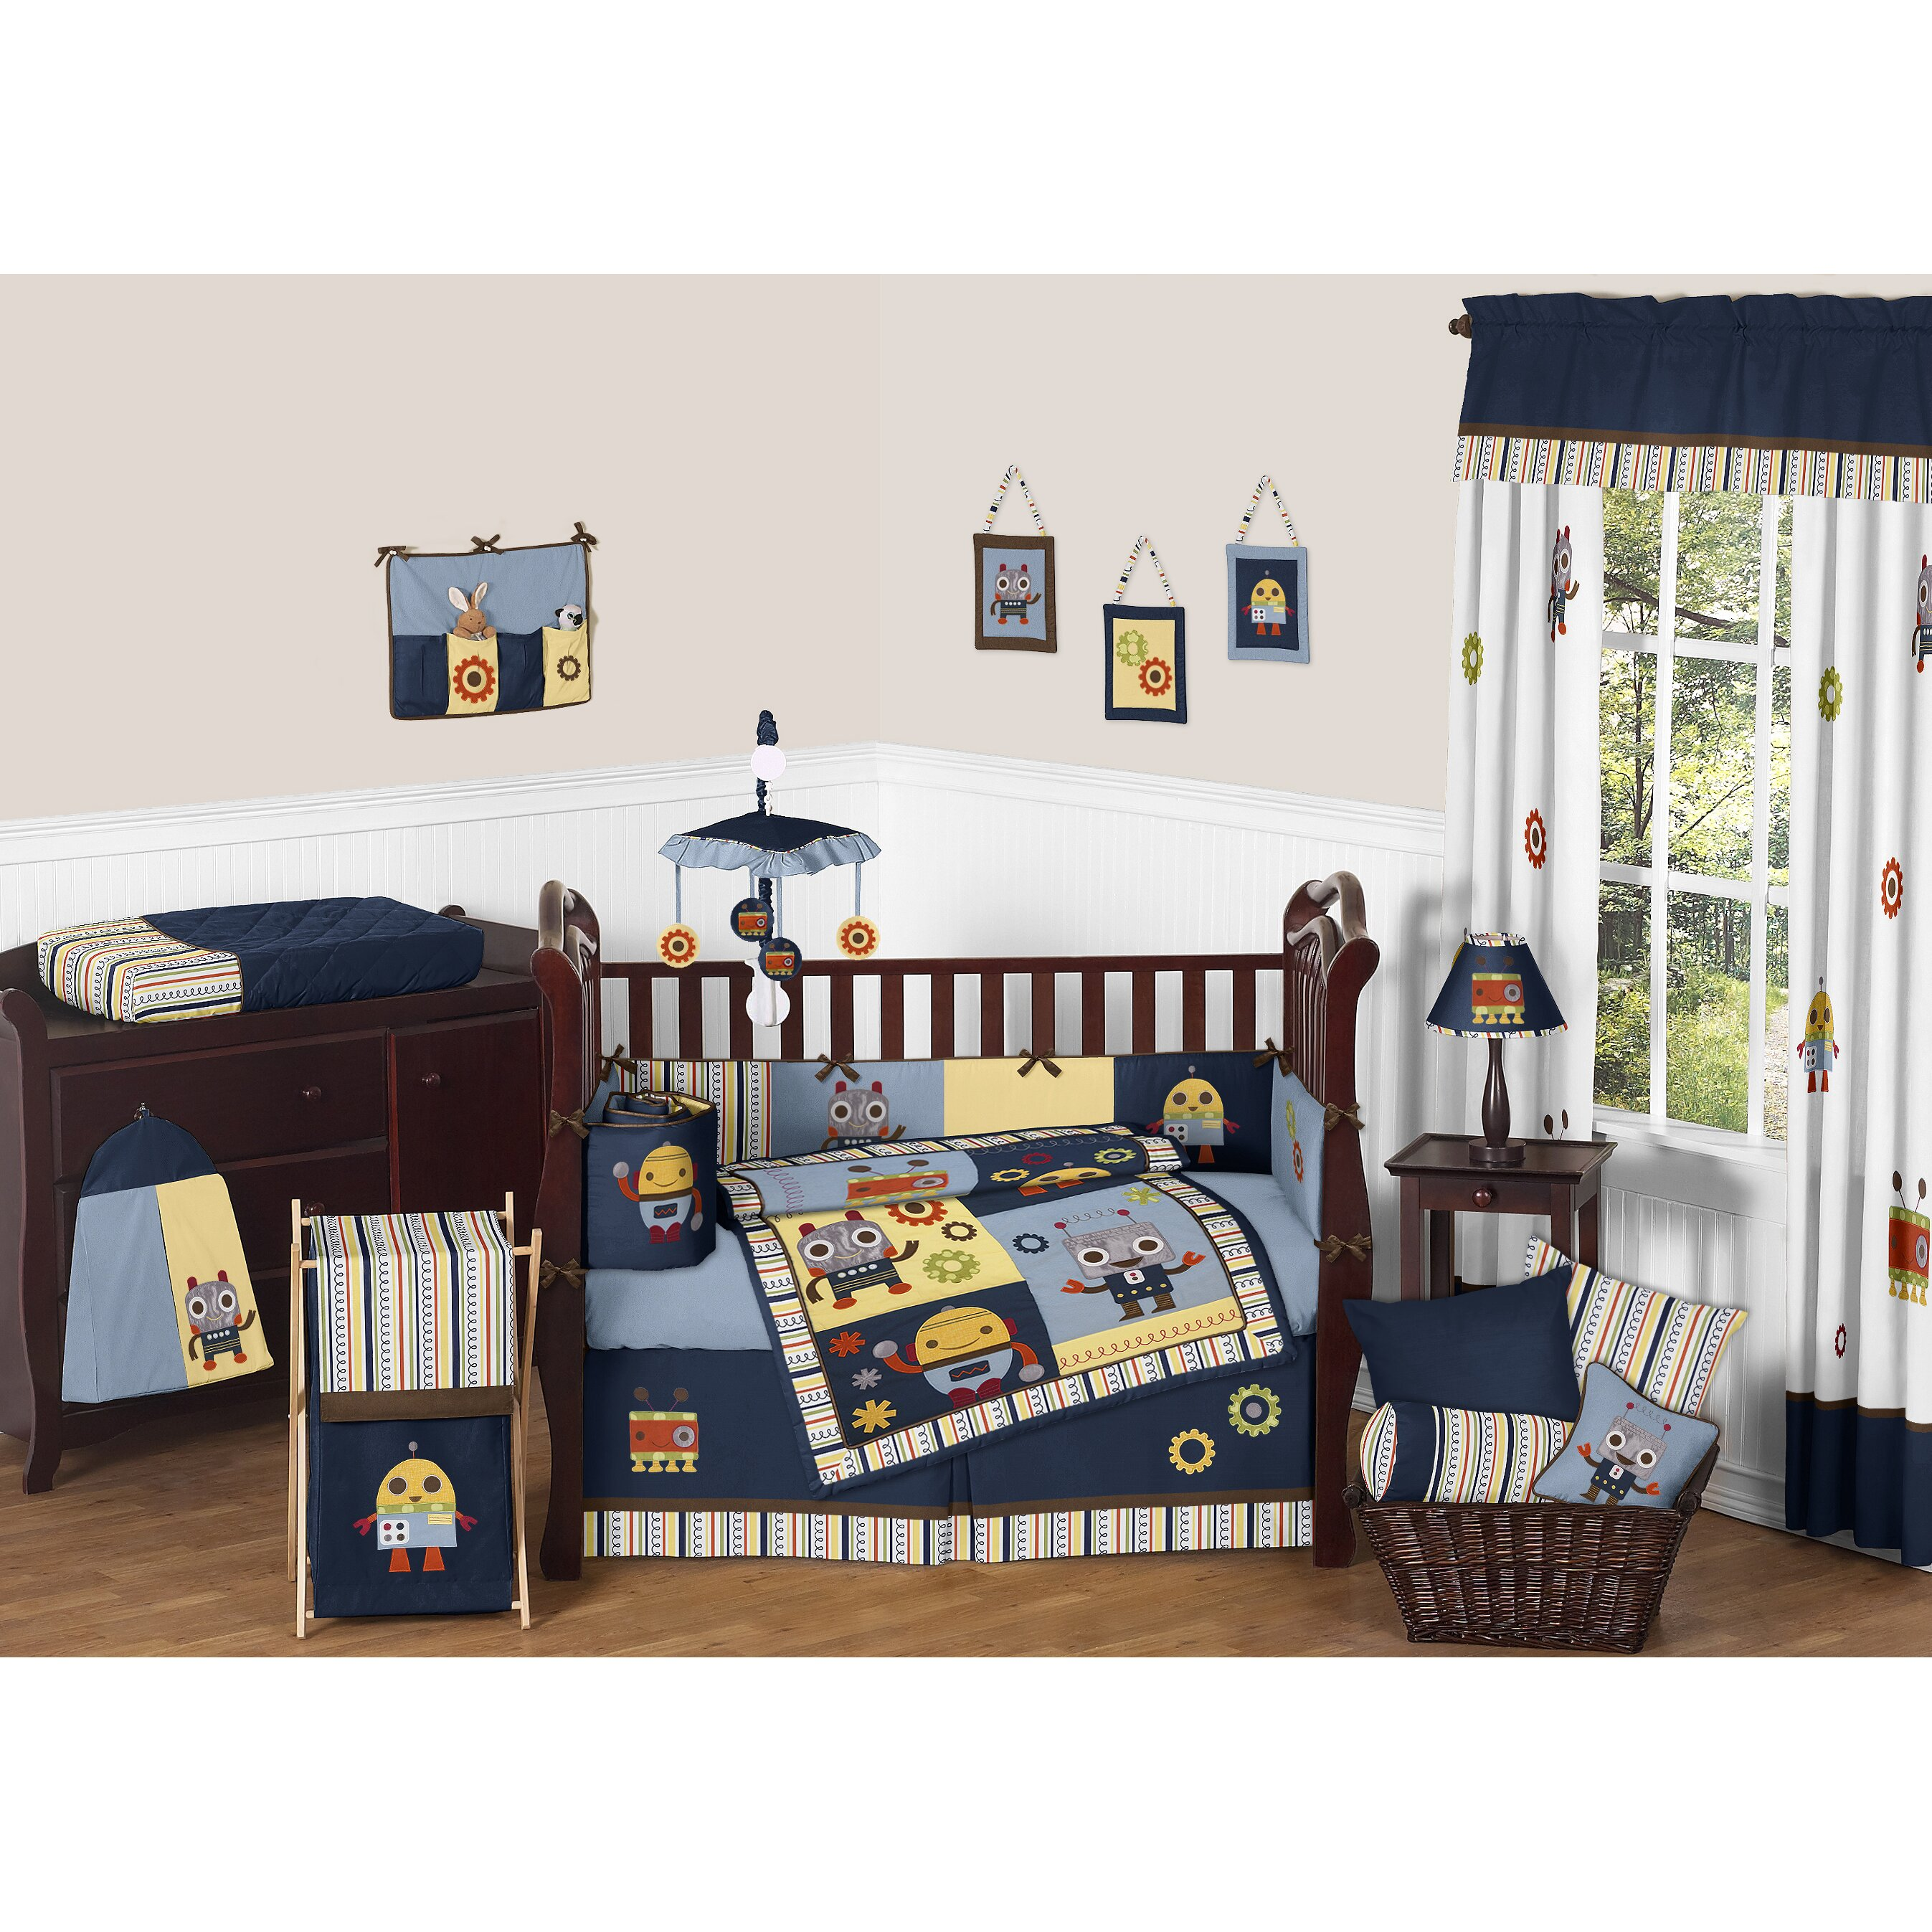 engrossing elizabeth girl in glamorous awesome bedding sets crib pink full amazon purple jojo a sweet set cute collection astounding cribs f size nursery designs butterfly and piece victoria beddinga of gray